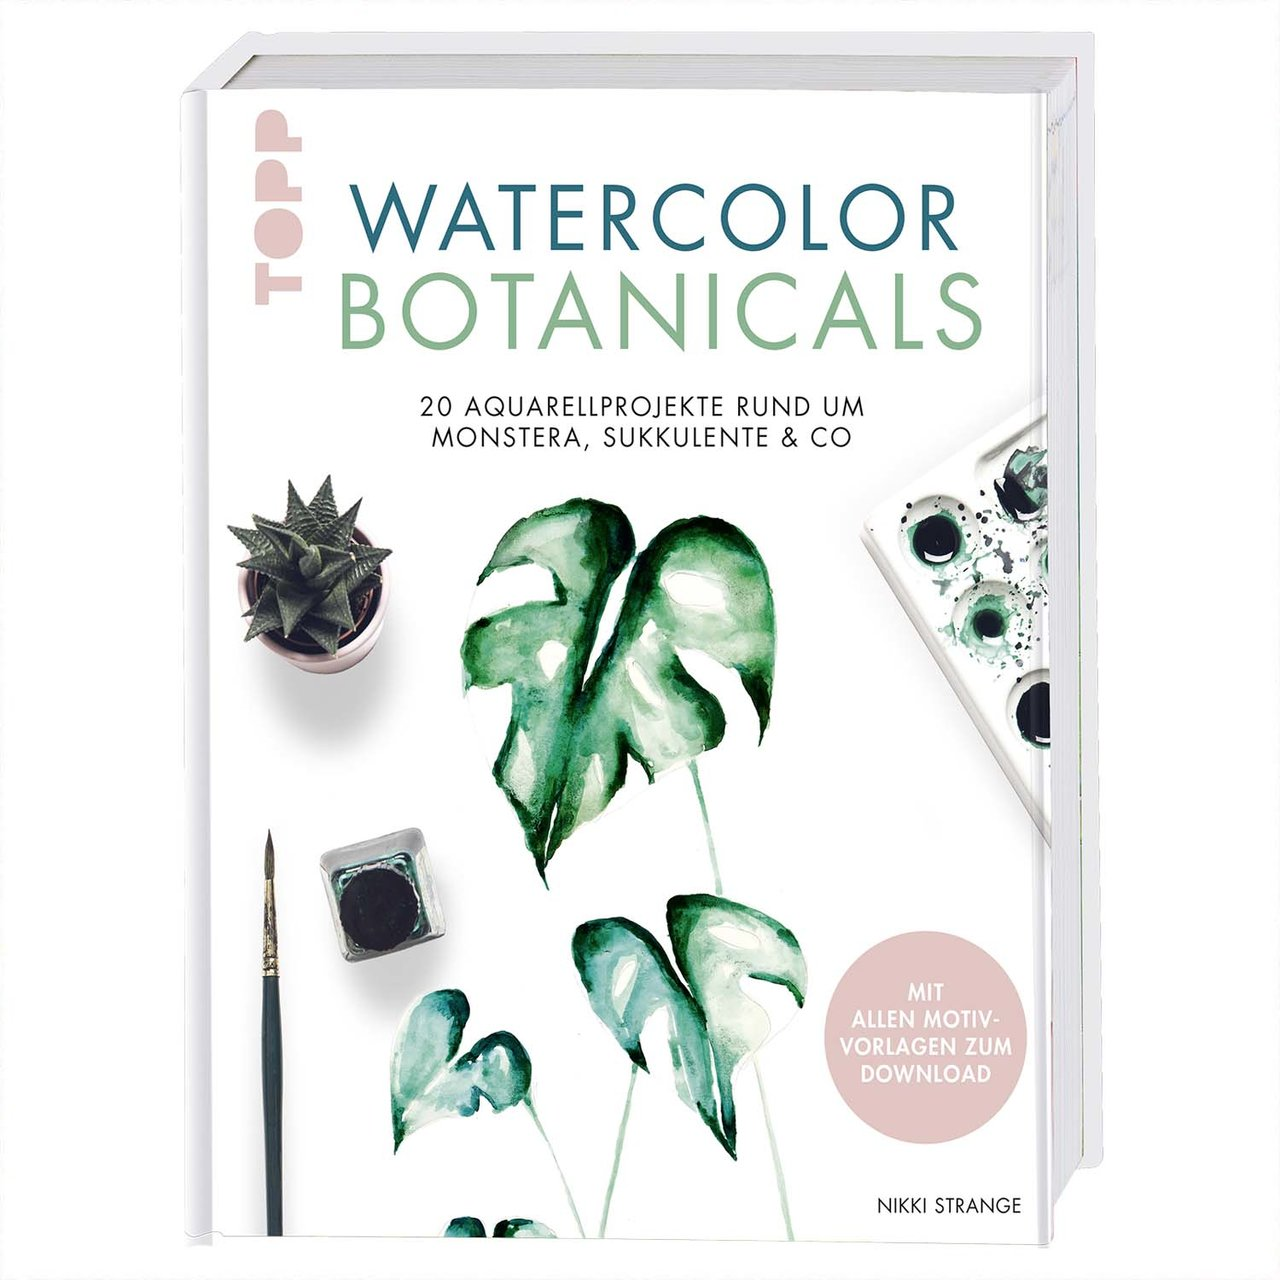 TOPP Watercolor Botanicals von TOPP